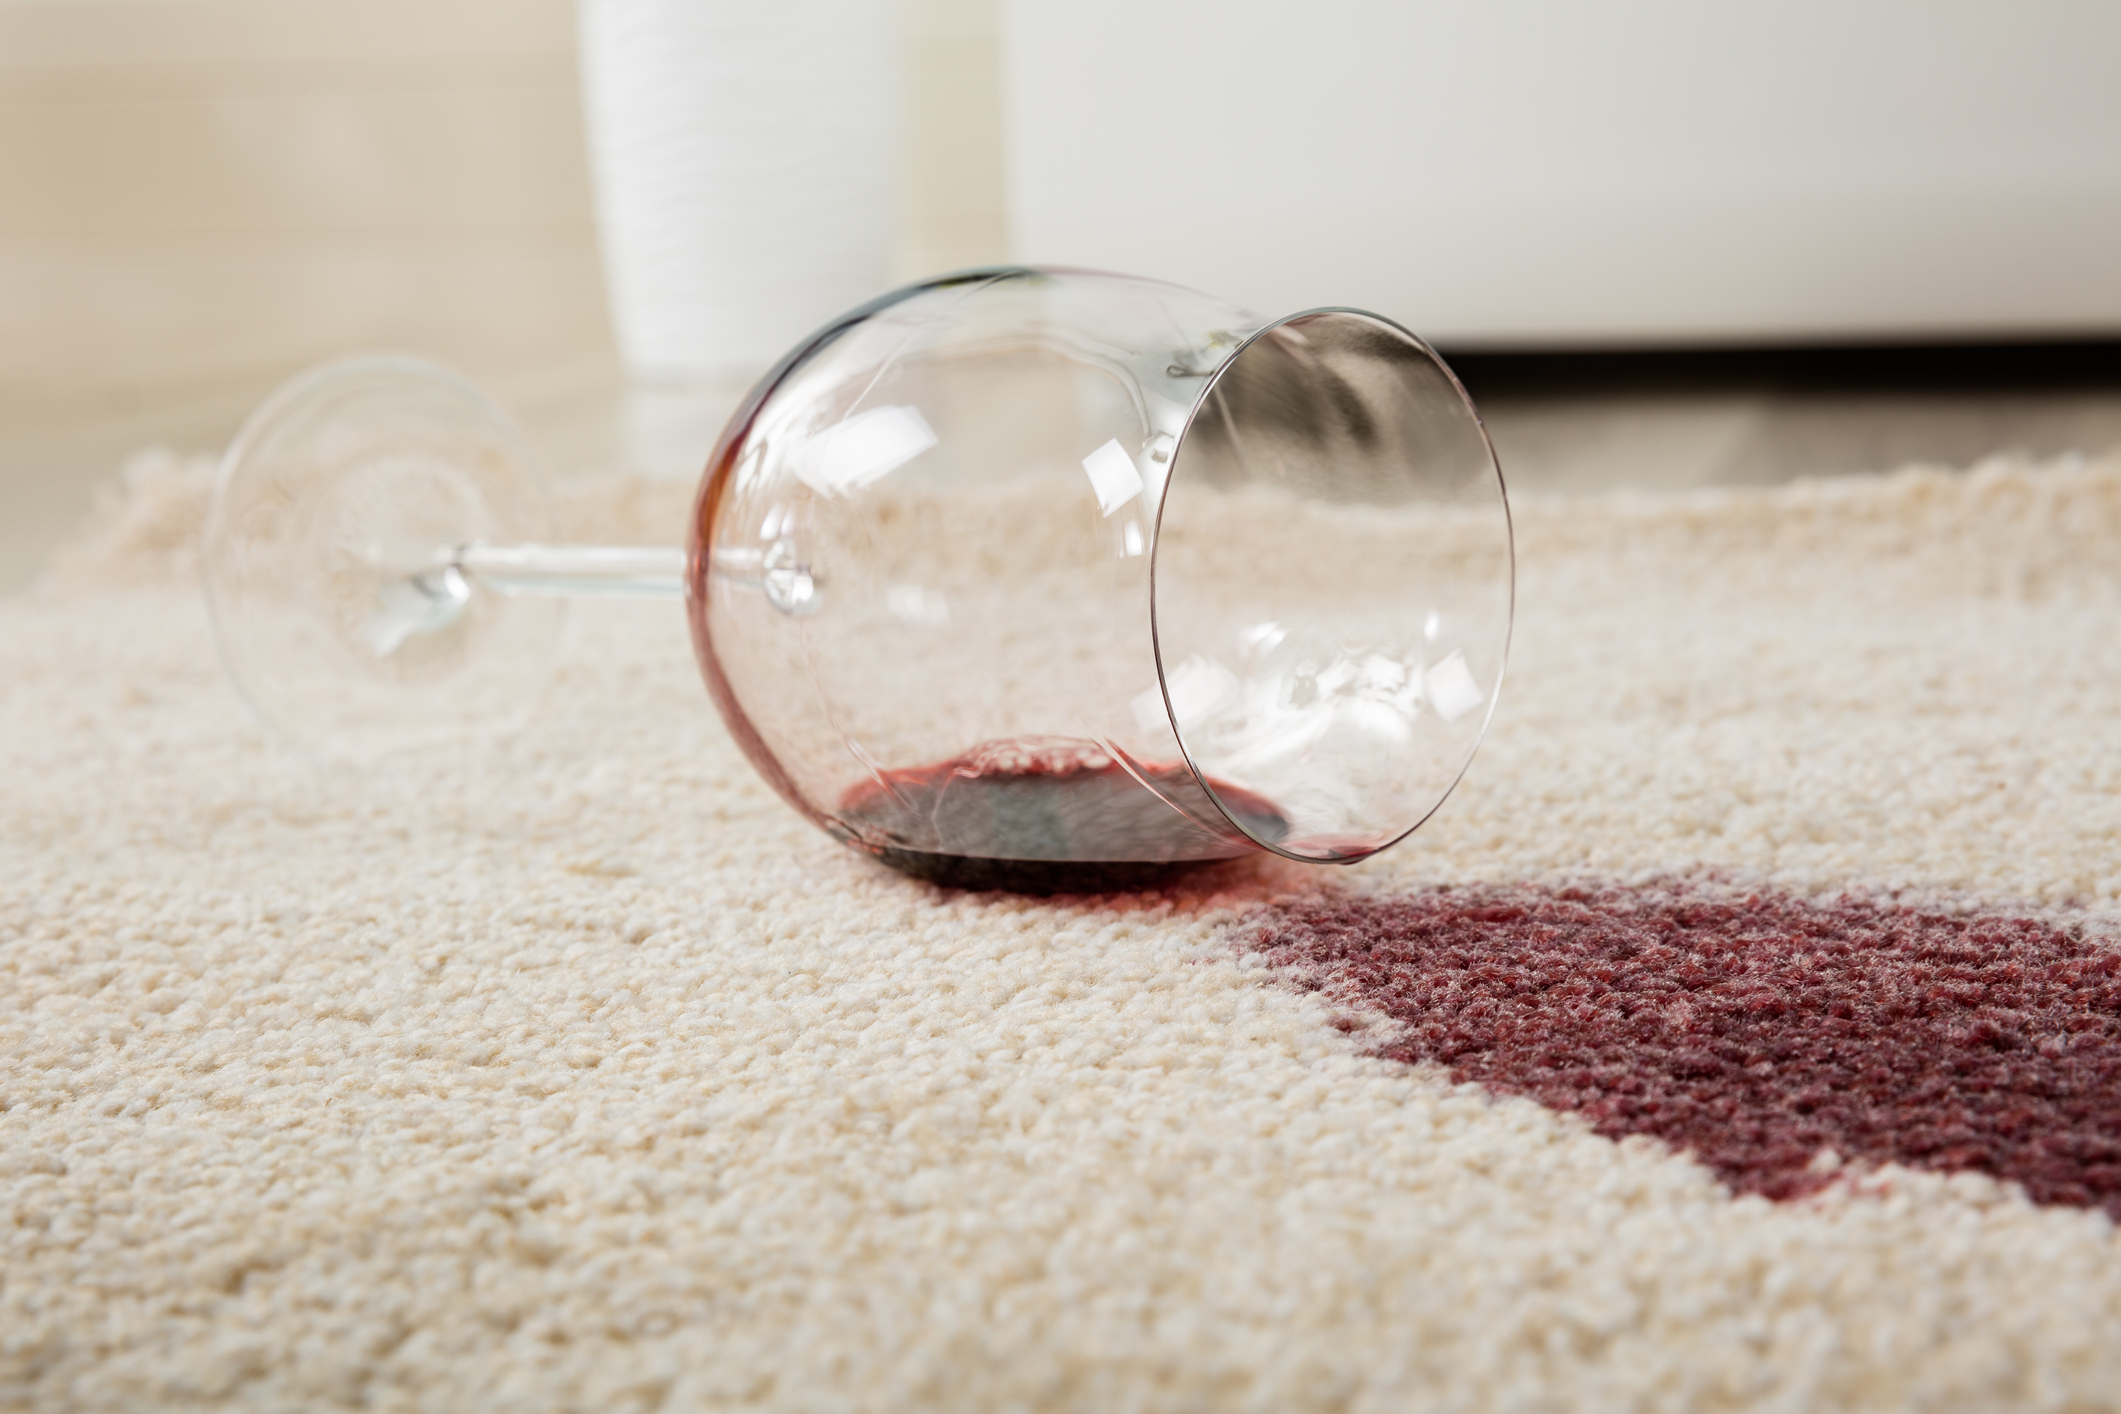 Taking On Carpet Stains During Lockdown – What Should You Do?